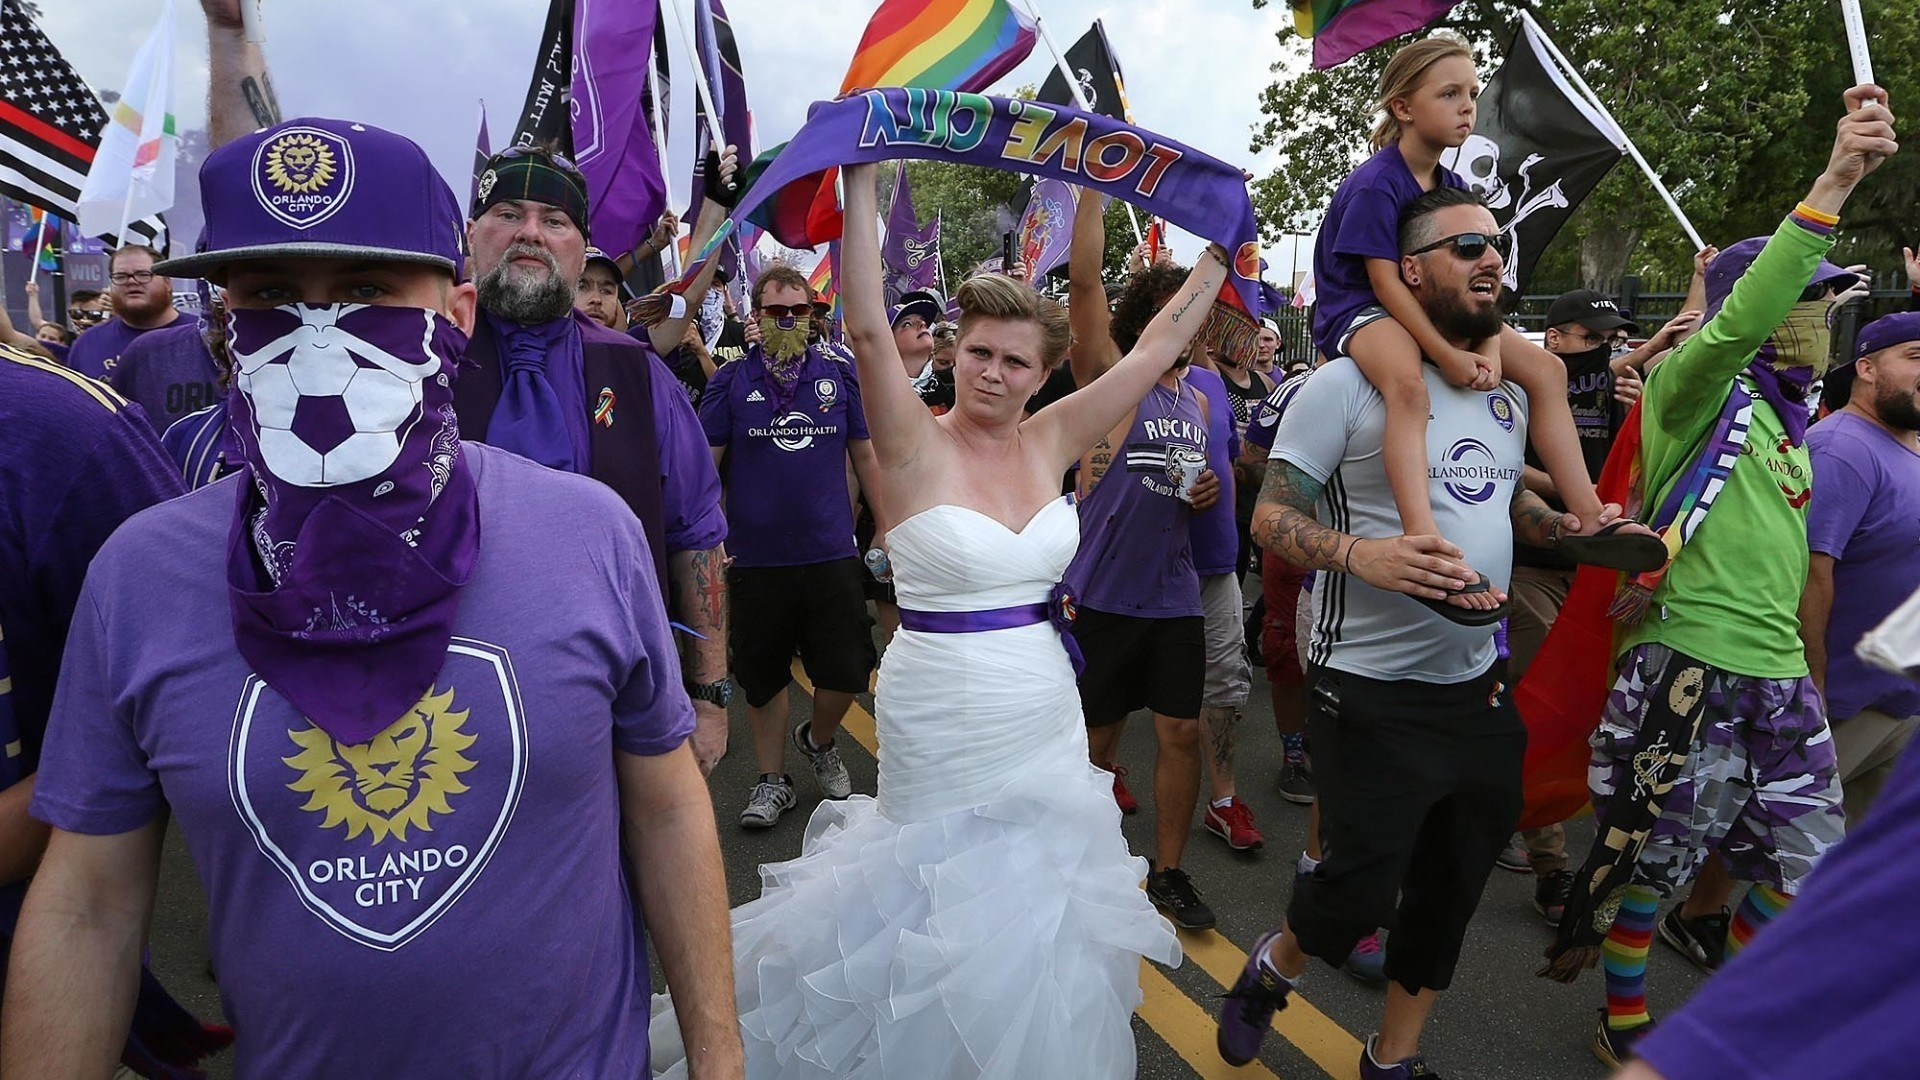 Orlando City Fan Shows Up To Game In Wedding Dress Orlando Sentinel